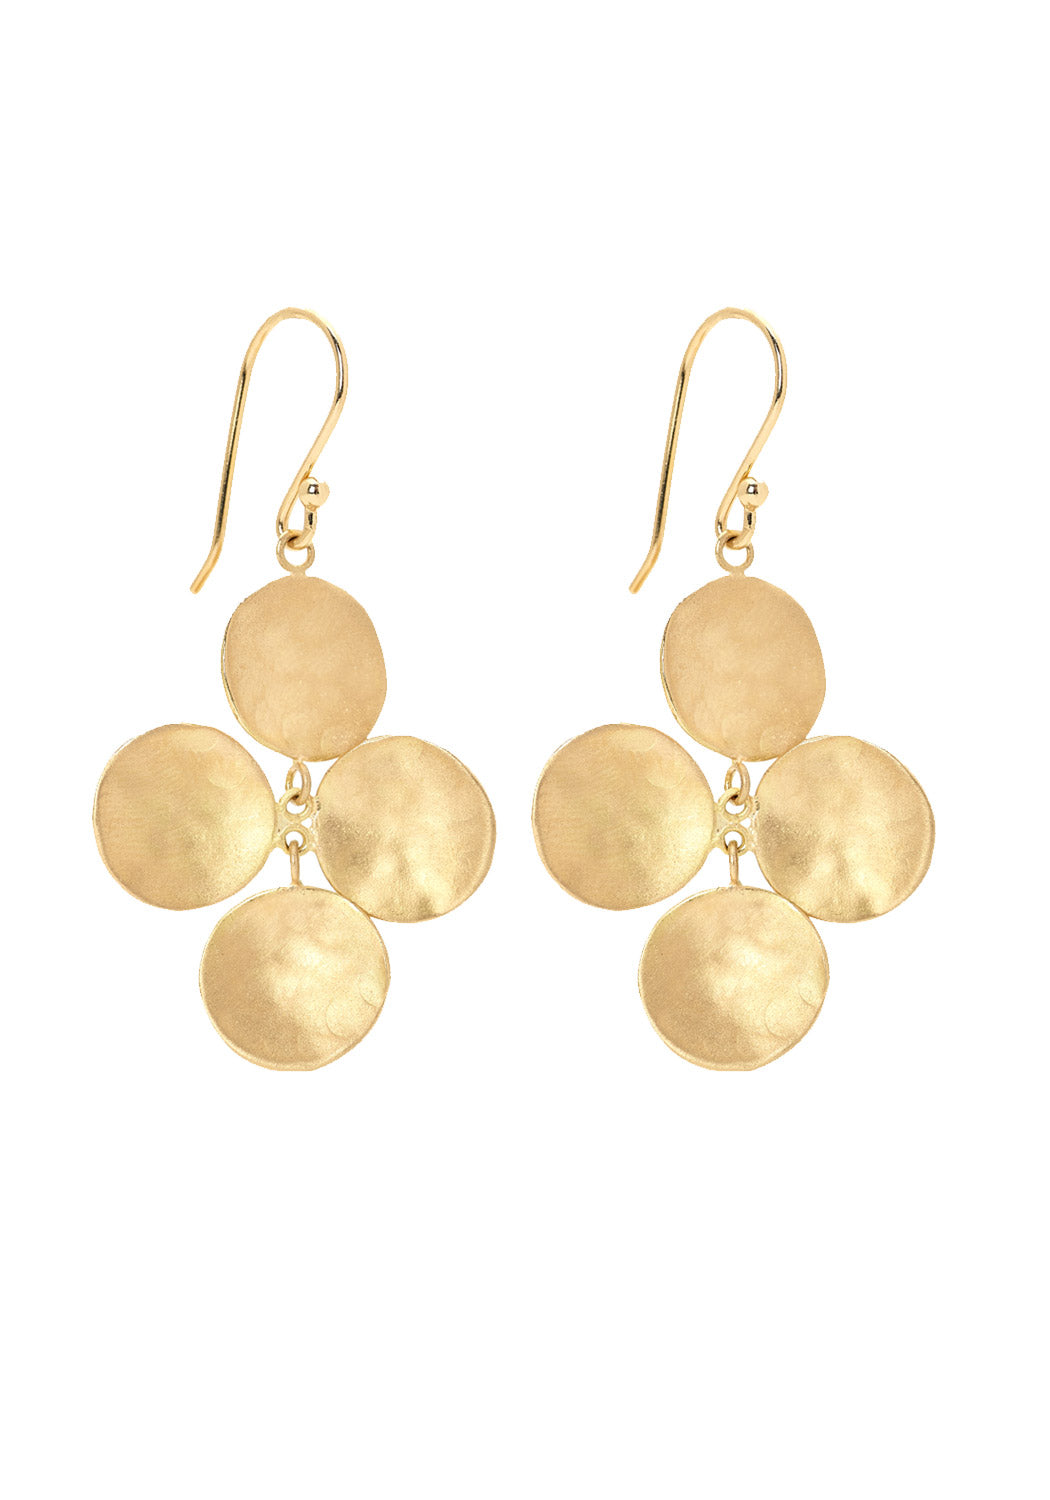 Anne Sportun Concave Disk Charm Hook Earrings